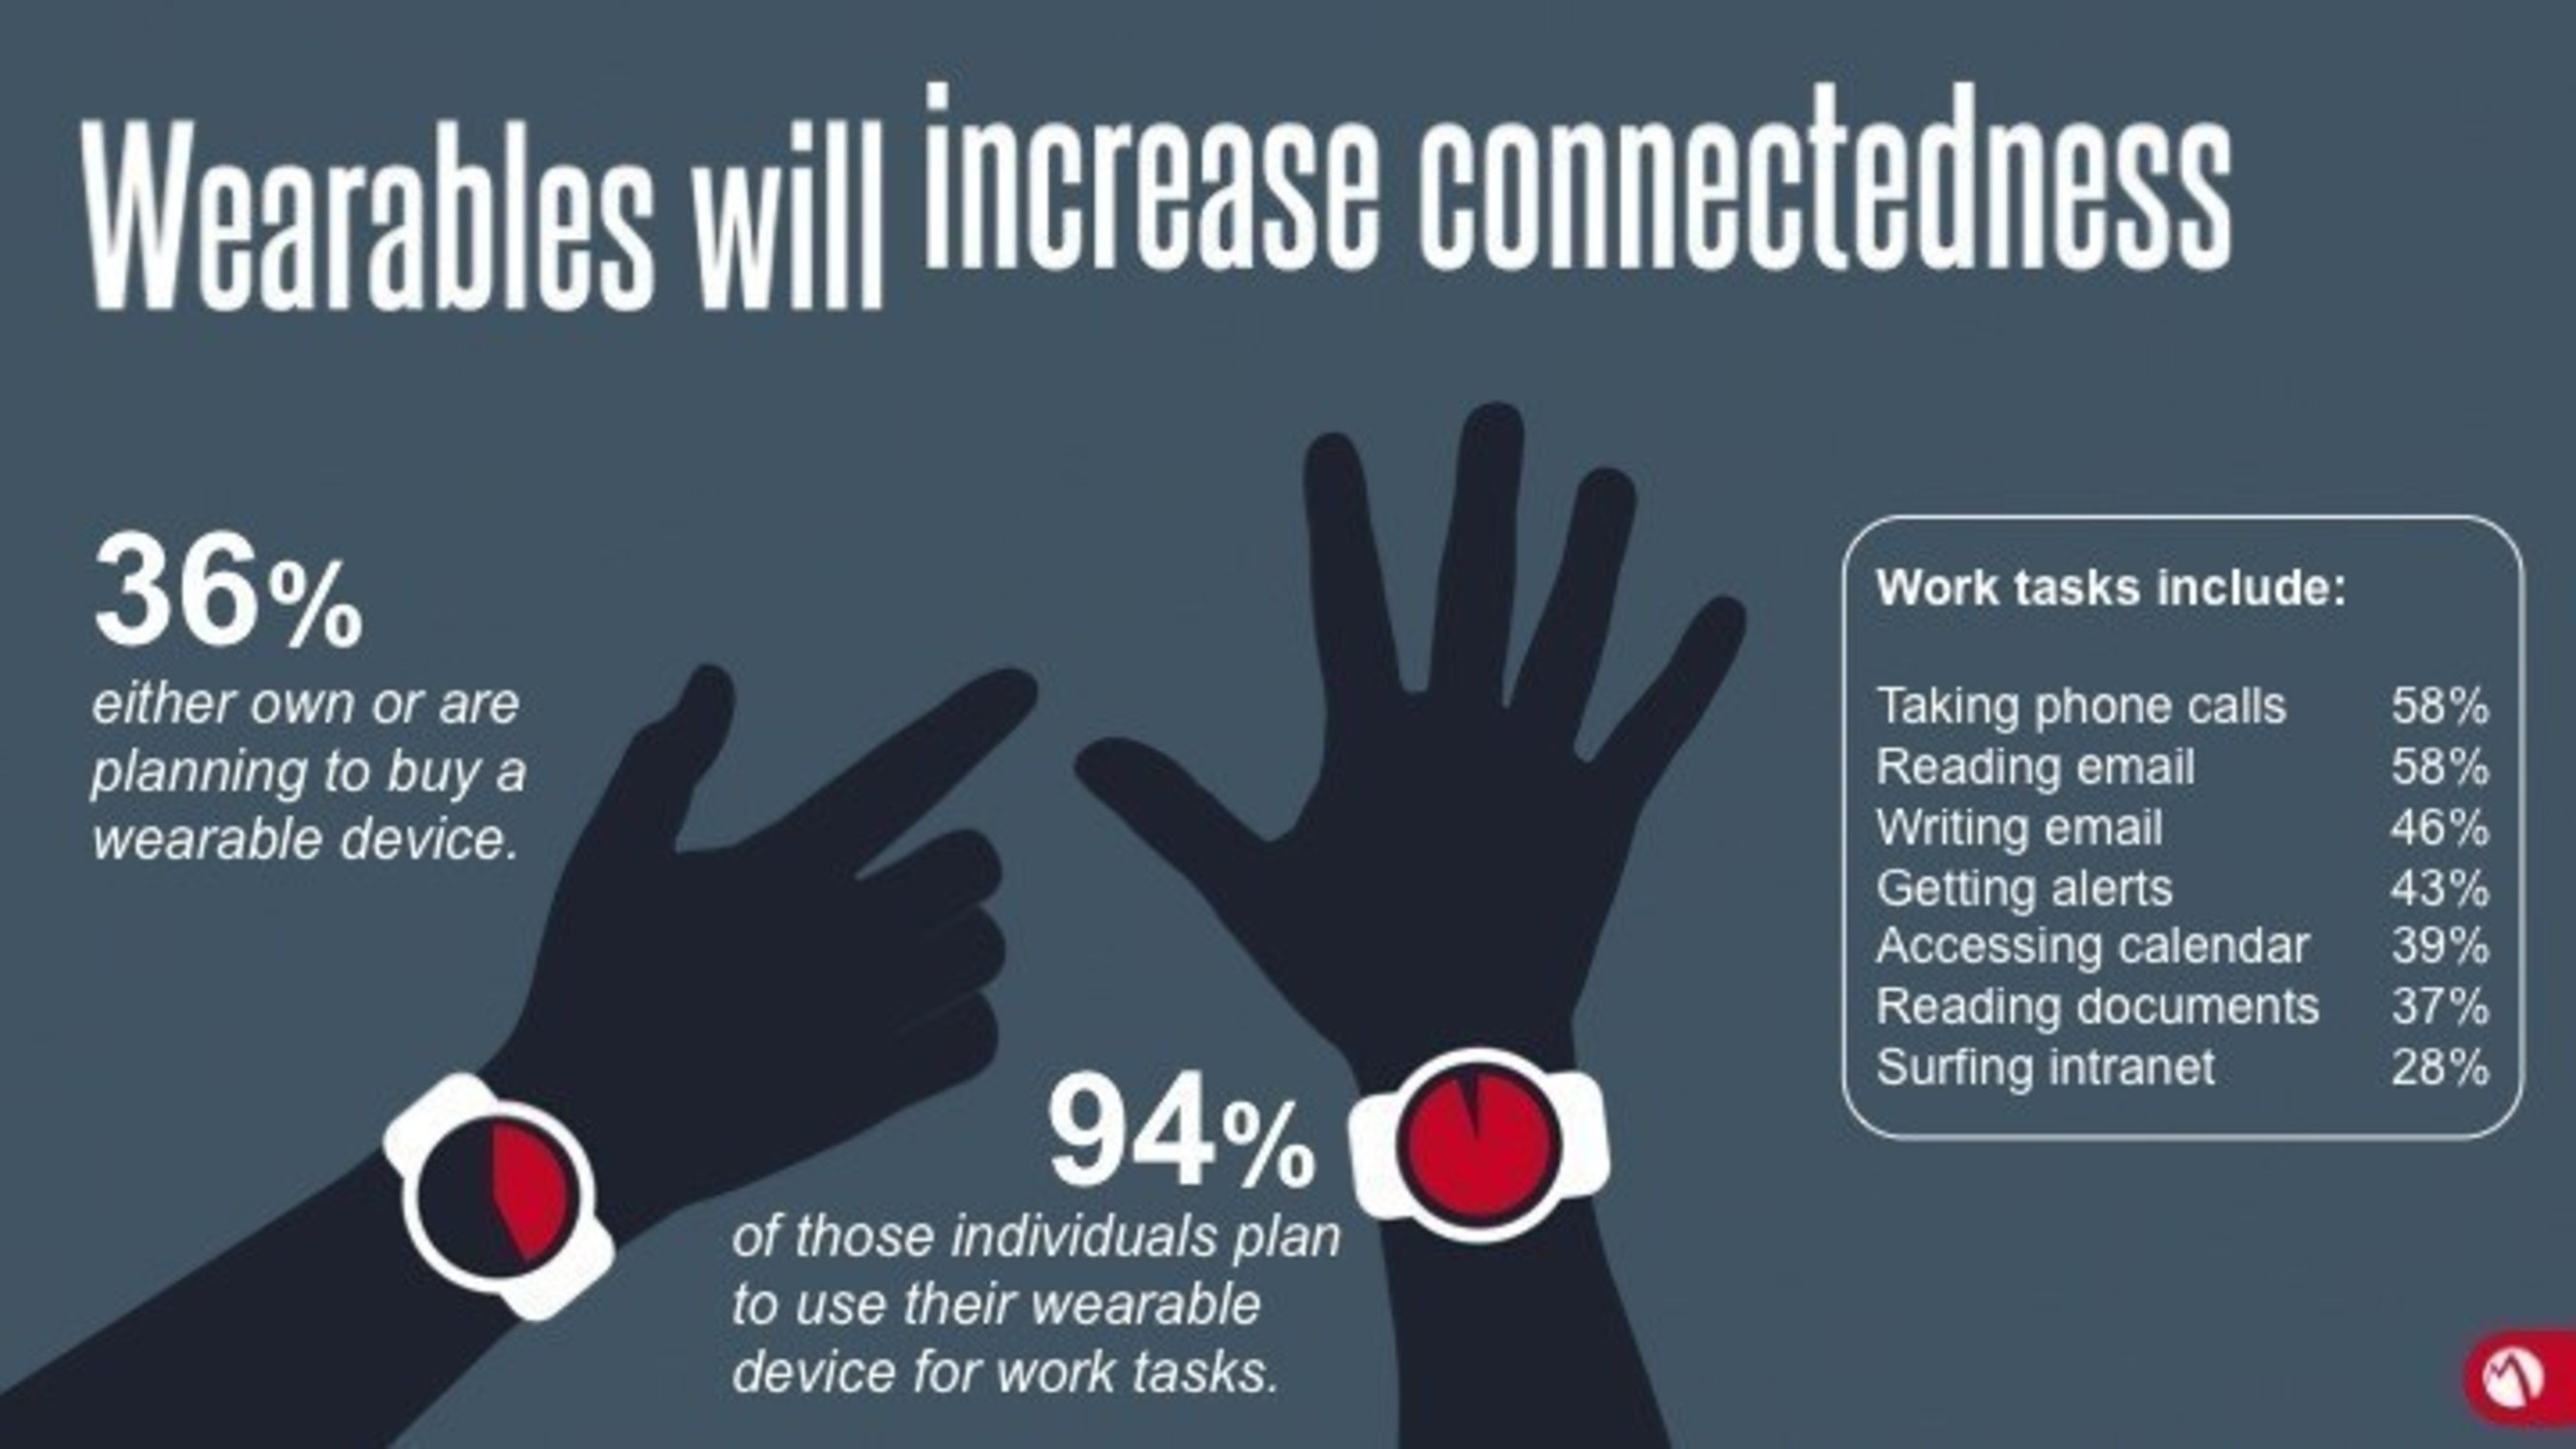 Wearables, like the Apple Watch, are coming to work.